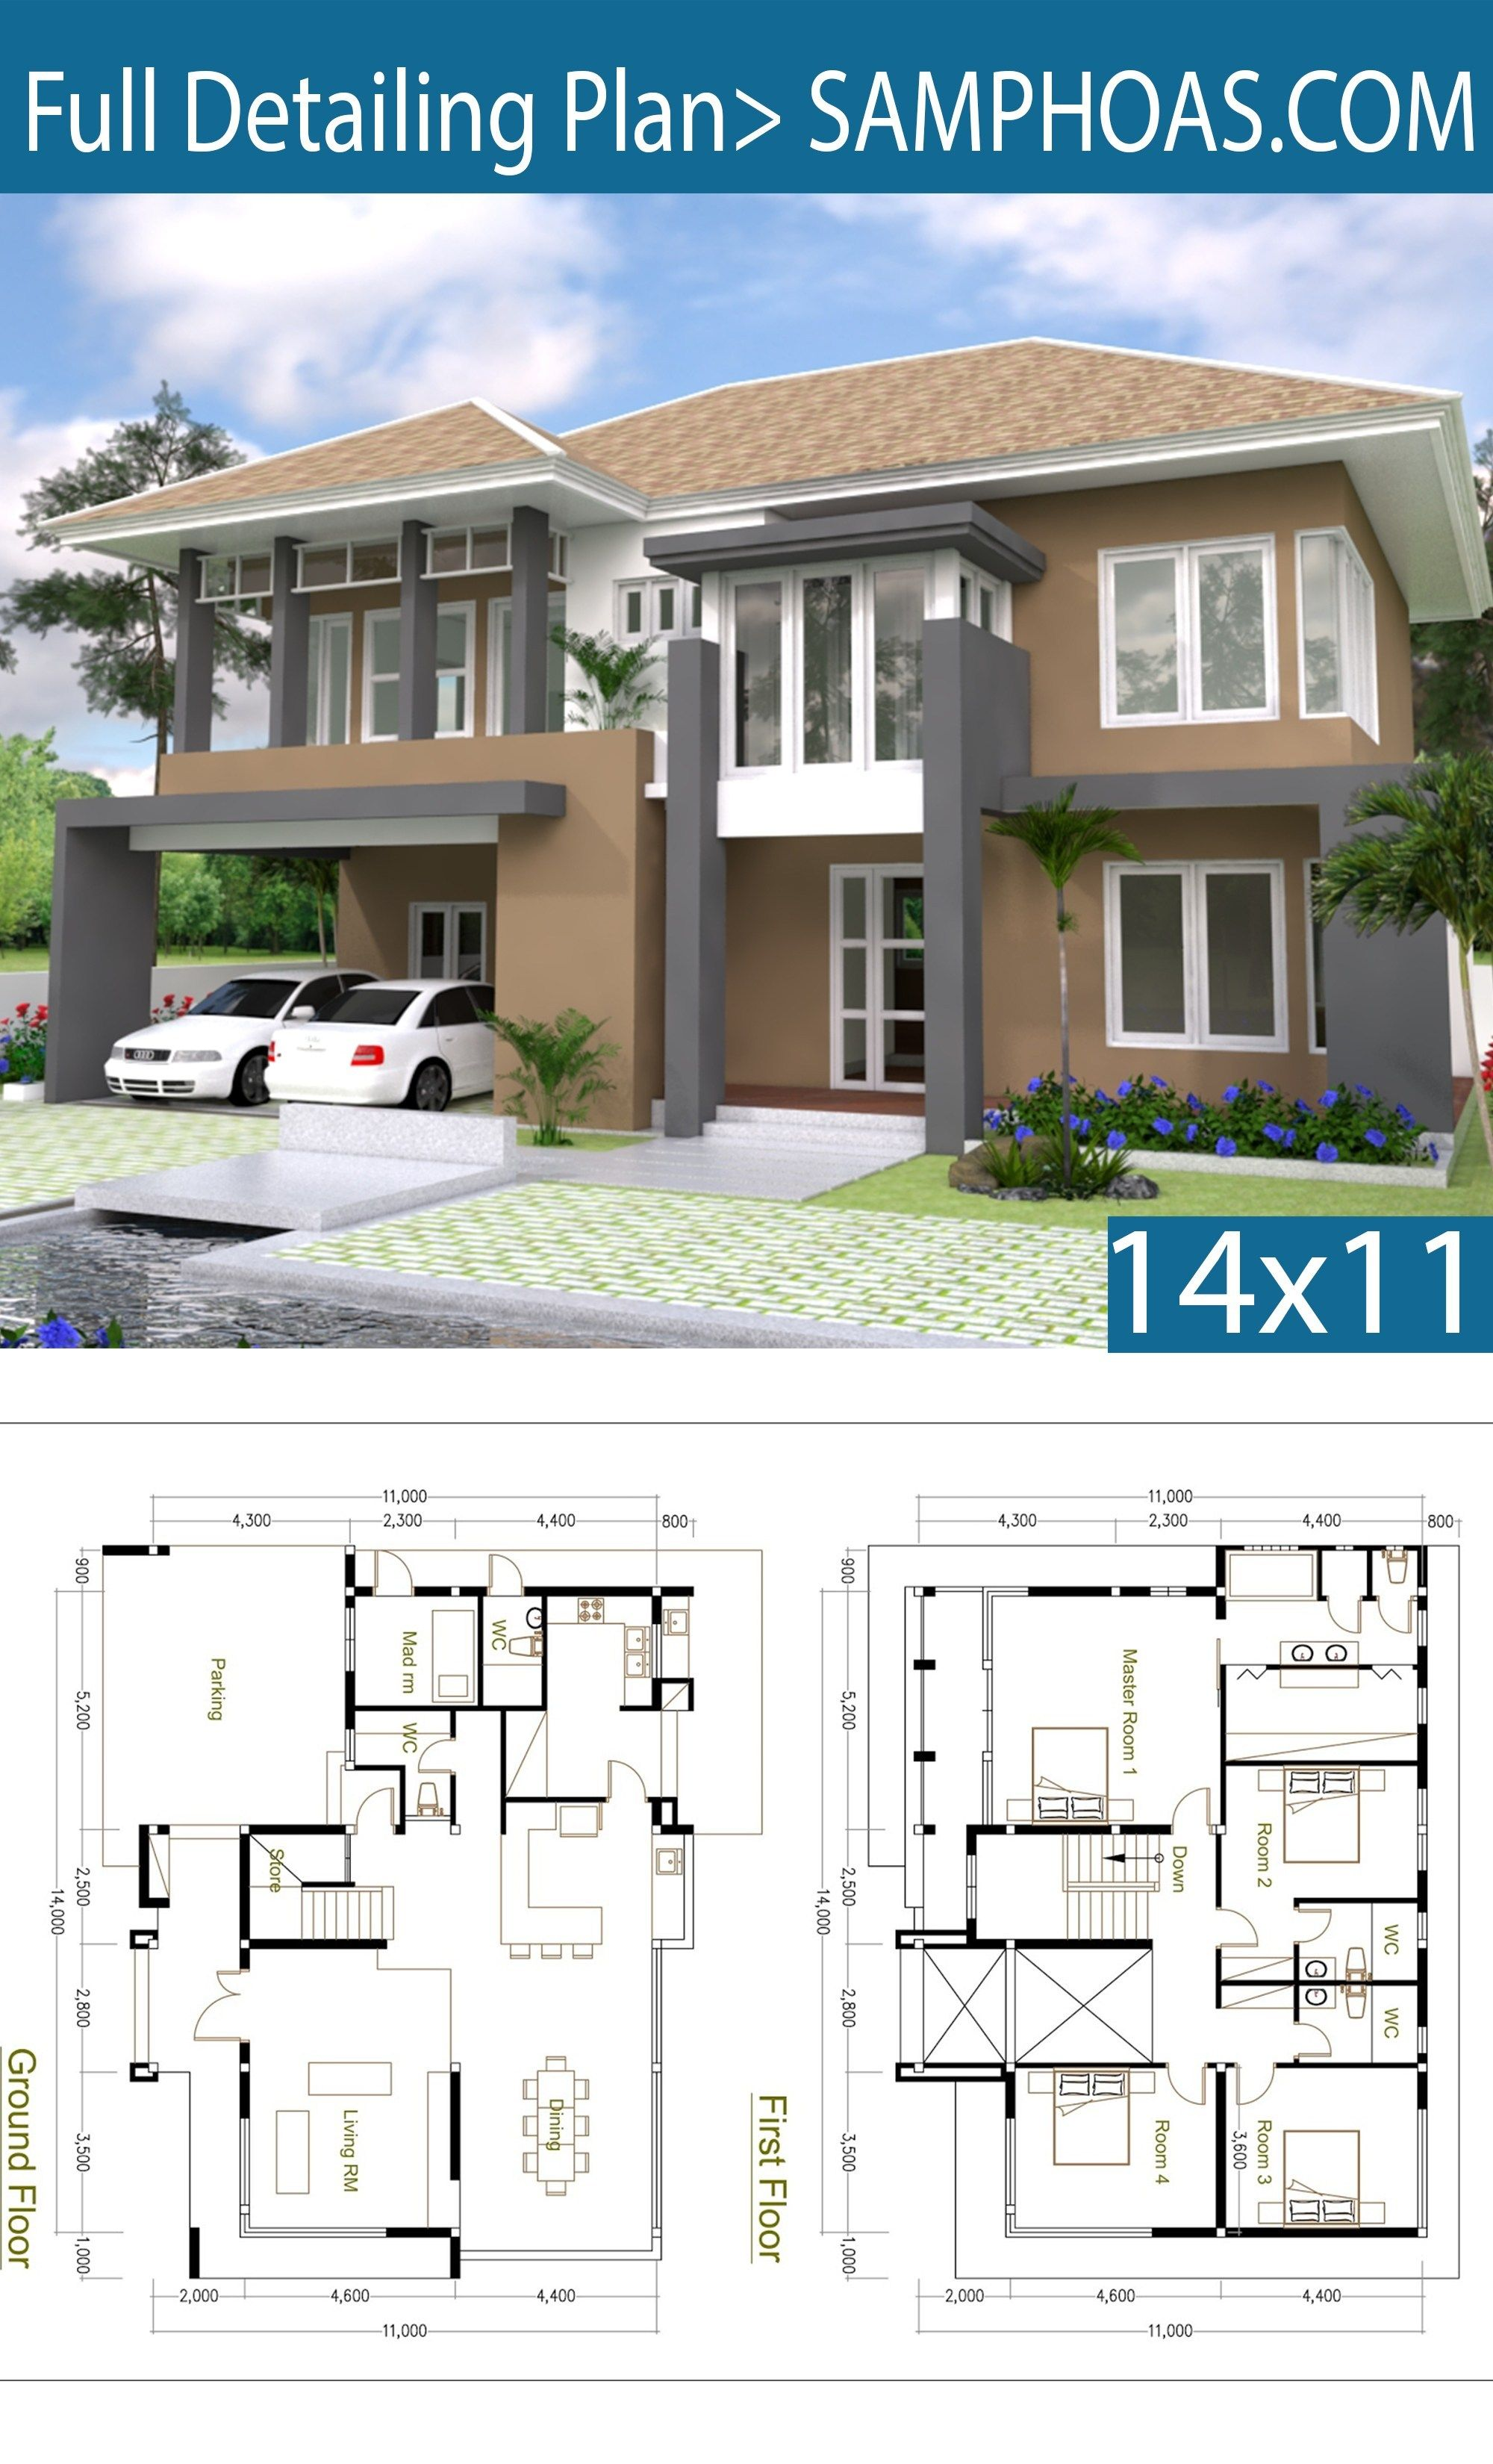 4 Bedrooms Home Design Plan Size 14x11m Samphoas Plan Duplex House Design Free House Design Model House Plan